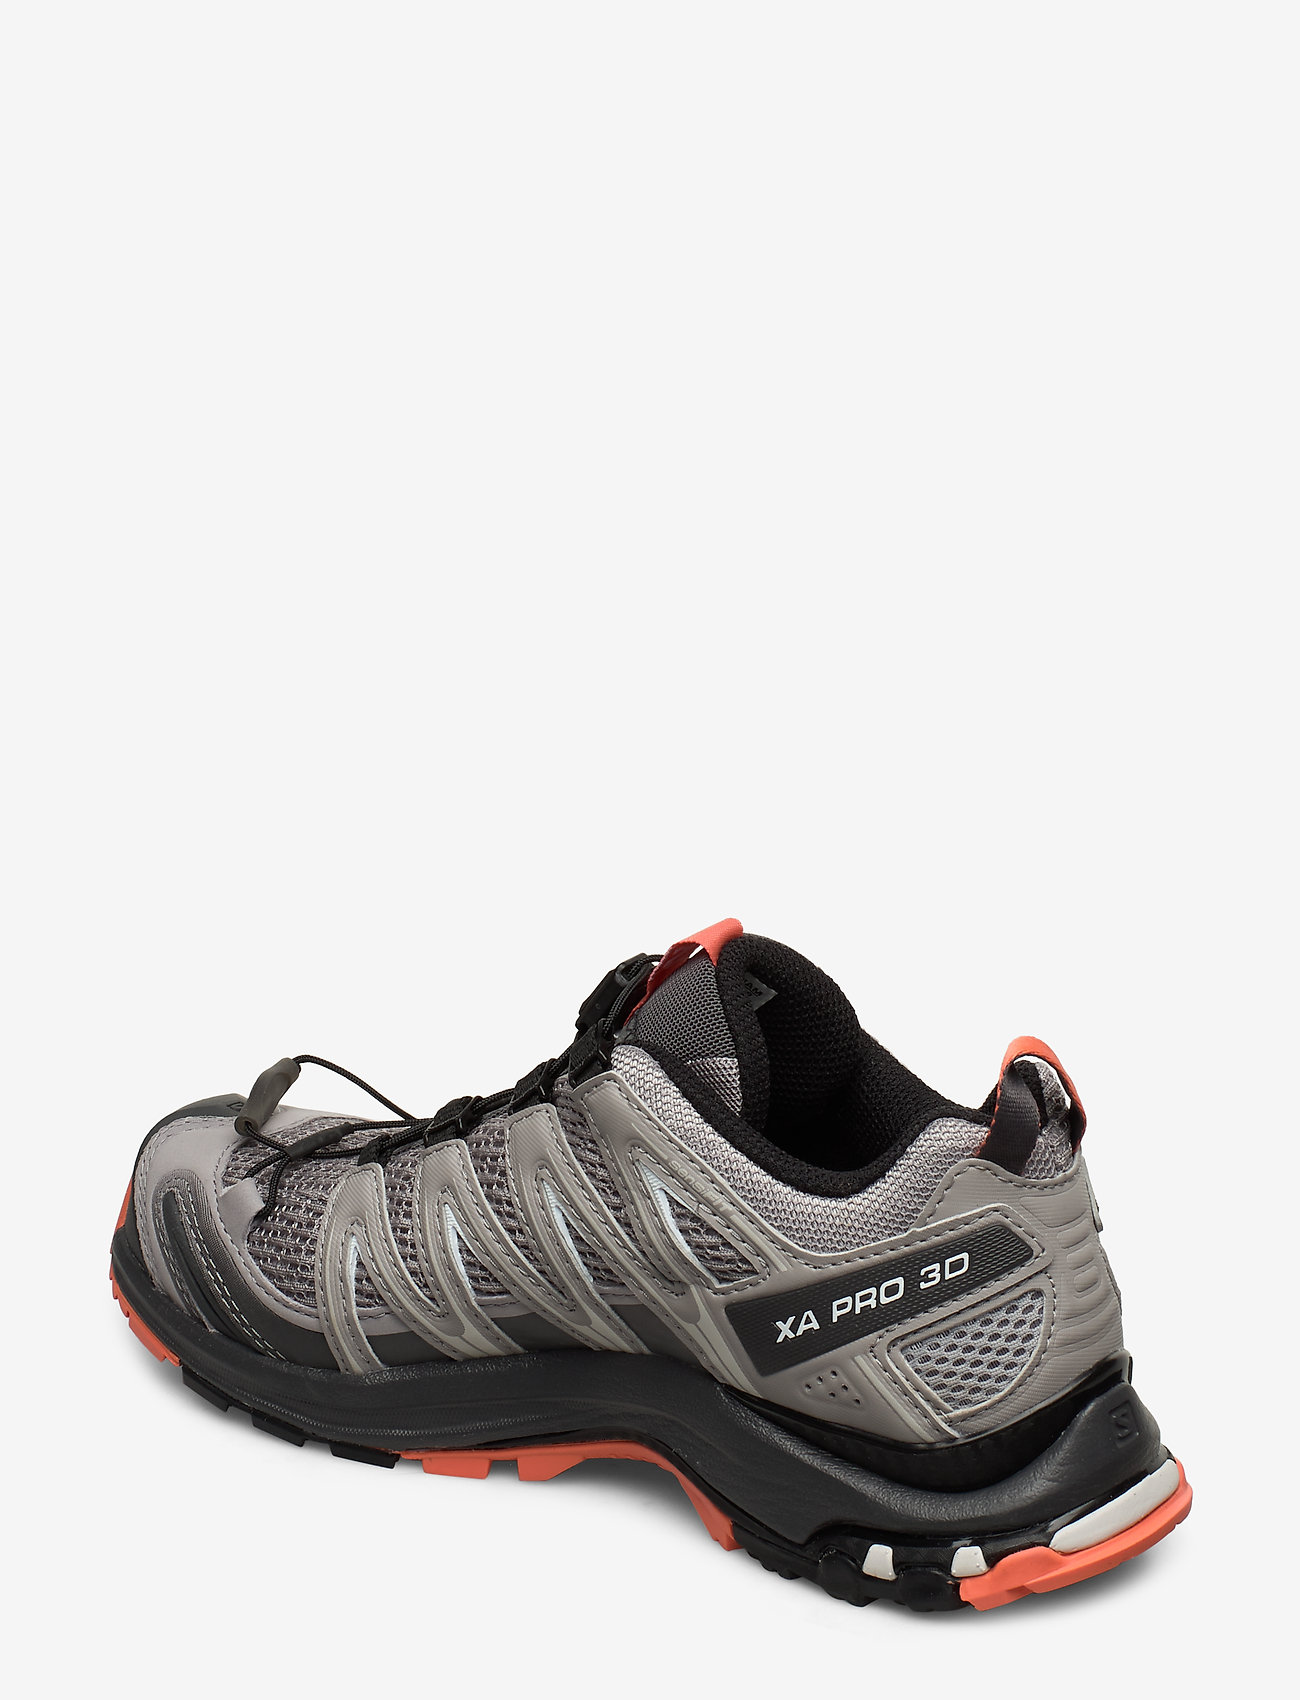 Shoes Xa Pro 3d W (Alloy/magnet/camellia) - Salomon